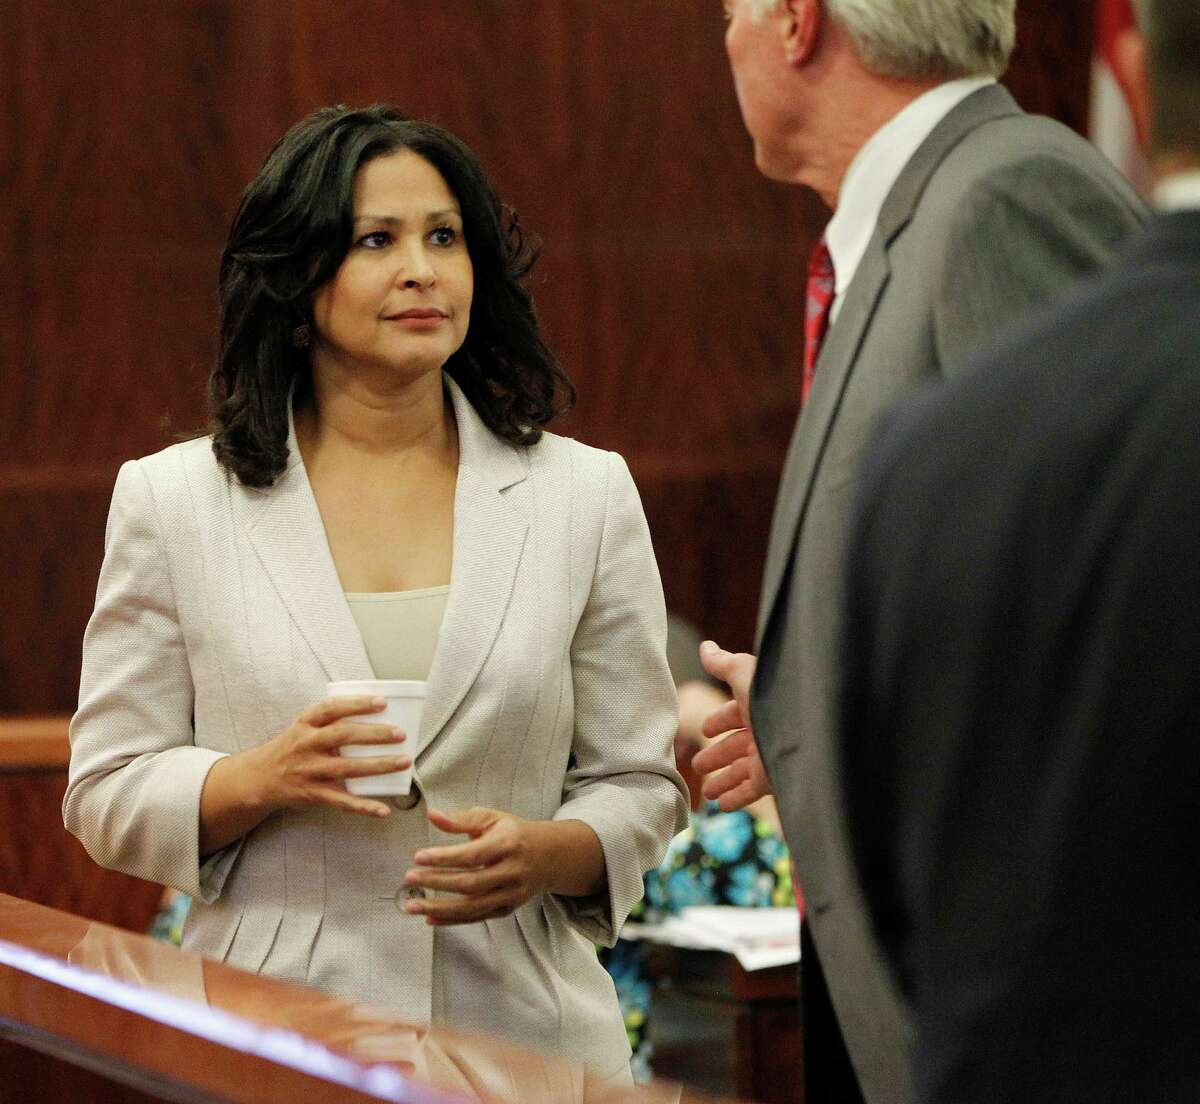 Evette Toney, the girlfriend of Dr. George Blumenschein, speaks with an attorney after her testimony during the trial of Dr. Ana Maria Gonzalez-Angulo, the cancer doctor accused of poisoning the coffee of a lover, in the 248th State District Court, Monday, Sept. 22, 2014, in Houston. ( Karen Warren / Houston Chronicle )